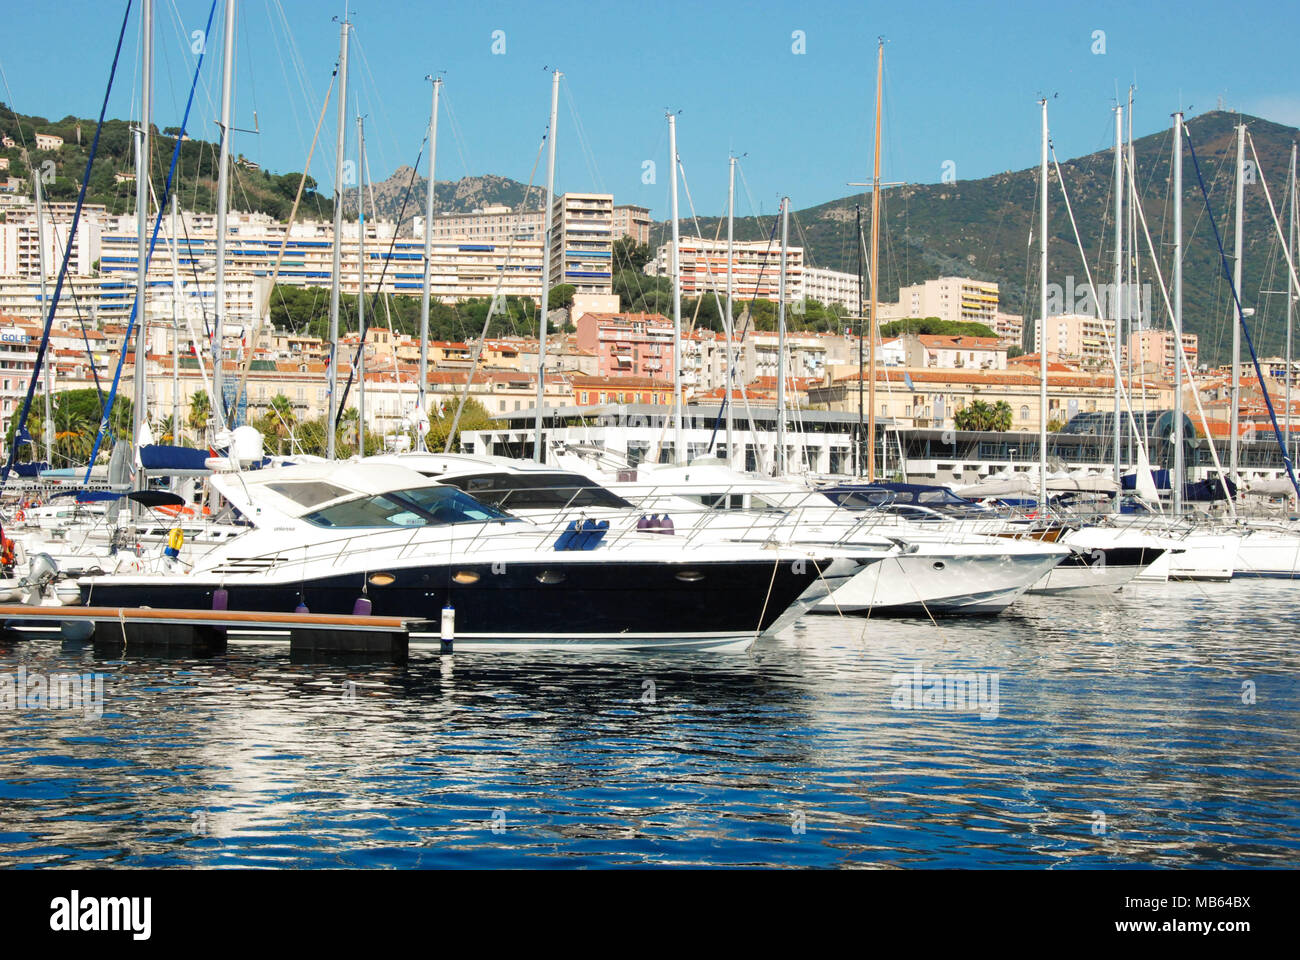 Scenic view of boats and yachts in the marina of Ajaccio, Corsica - Stock Image